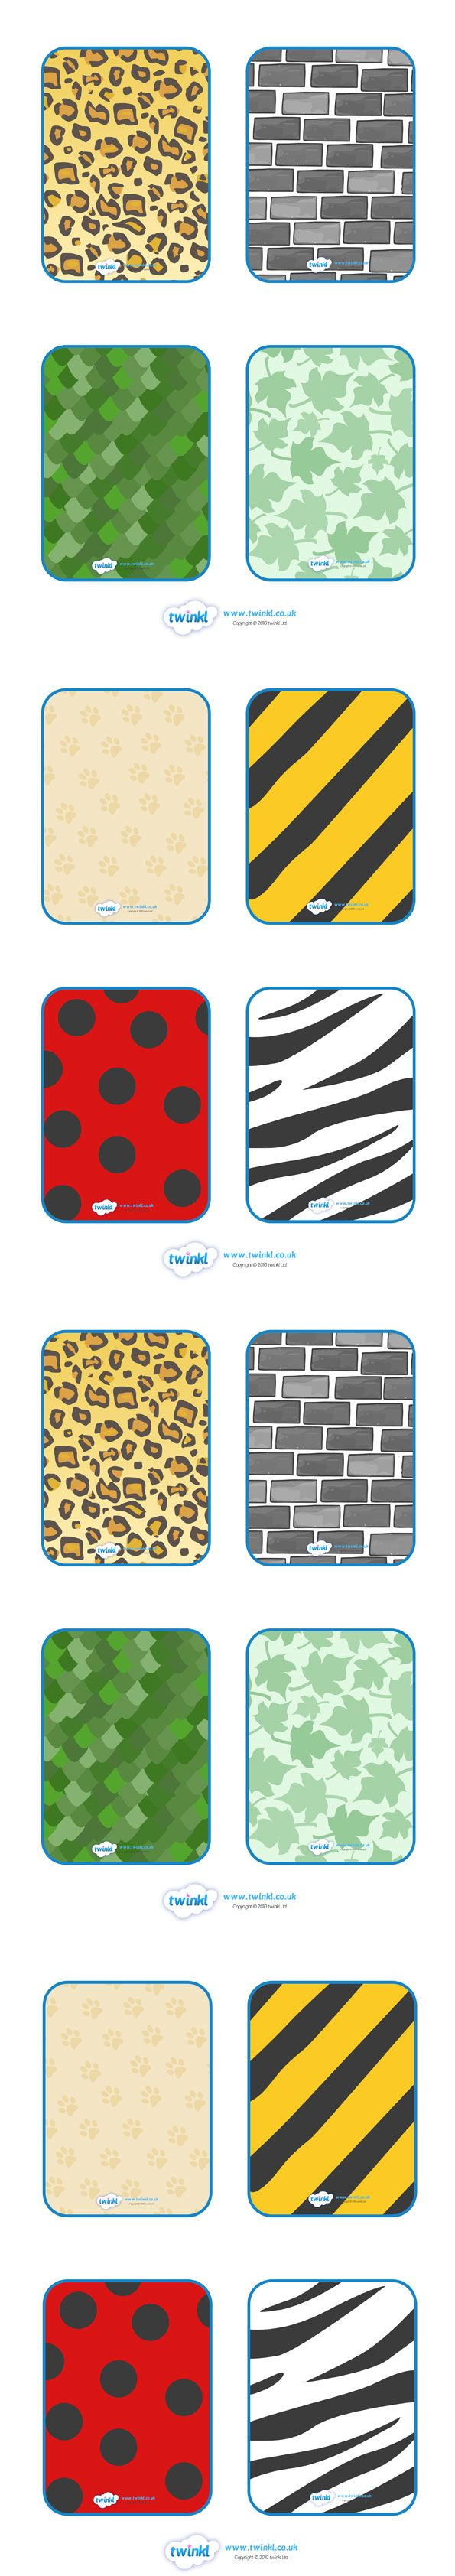 Twinkl Resources >> Matching Pattern Cards >> Thousands of printable primary teaching resources for EYFS, KS1, KS2 and beyond! matching cards, sorting cards, pattern, matching, animal patterns, giraffe, zebra, leopards,